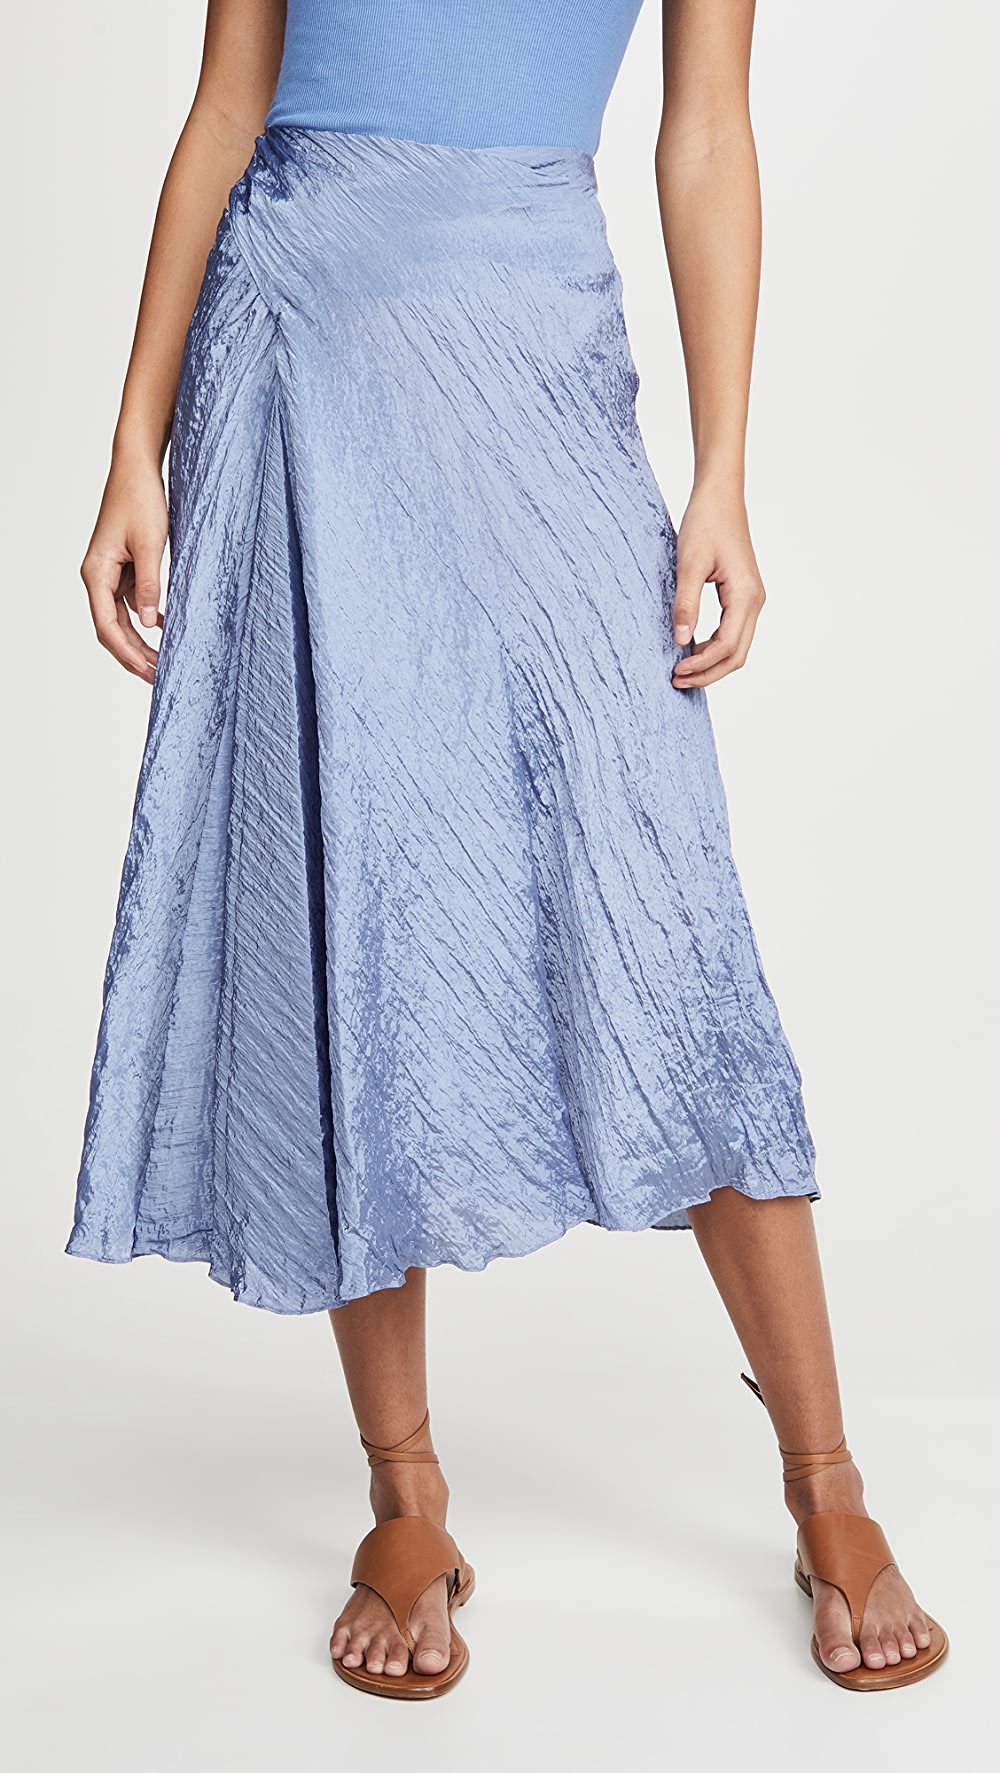 Audacious Vince - Textured Drape Skirt Customers First